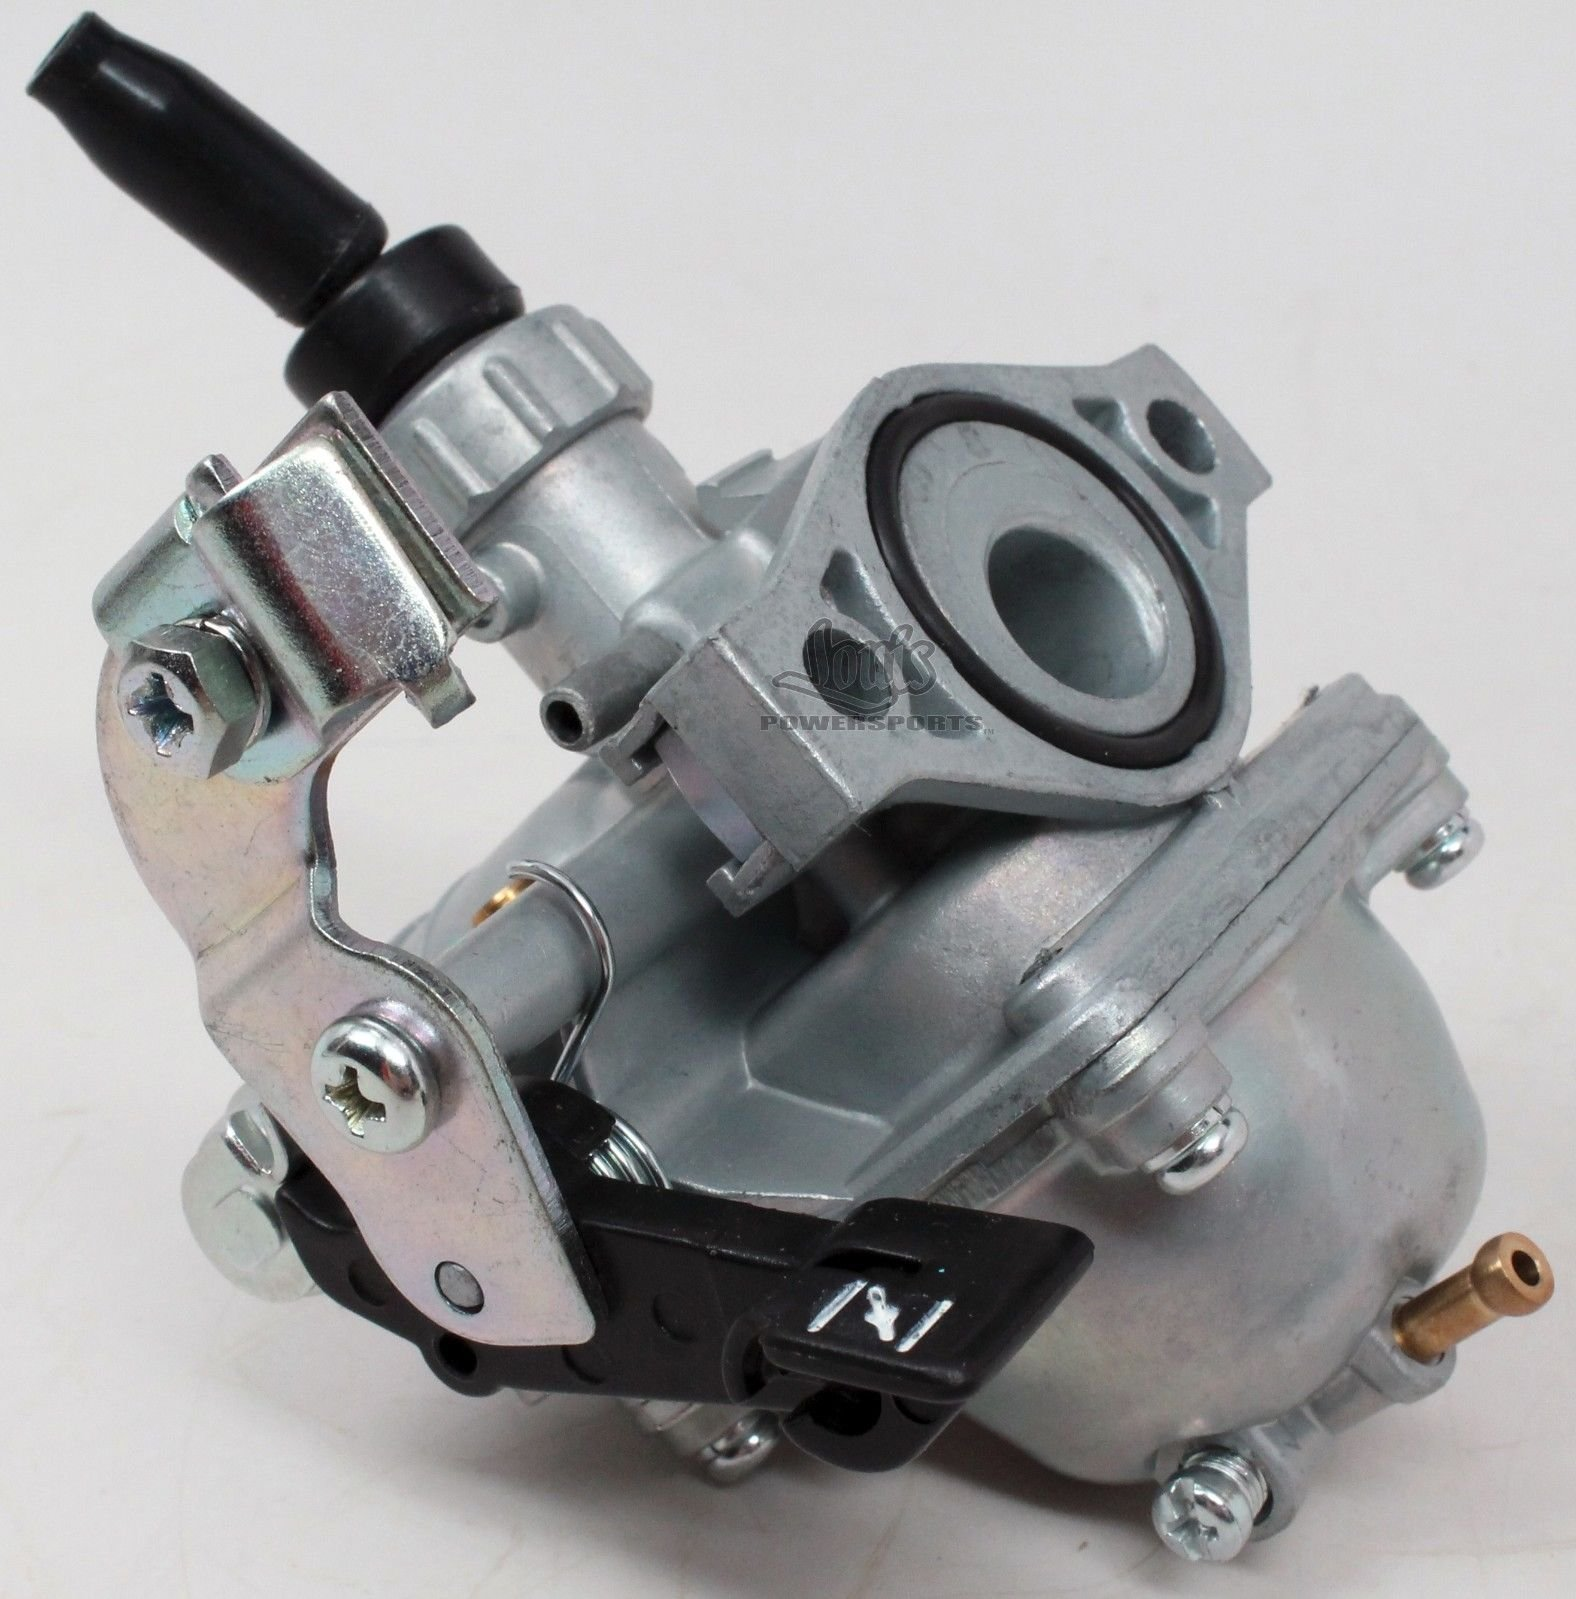 2007-2014 Polaris Youth Outlaw Predator 50 ATV Carburetor Carb Assembly 0454773